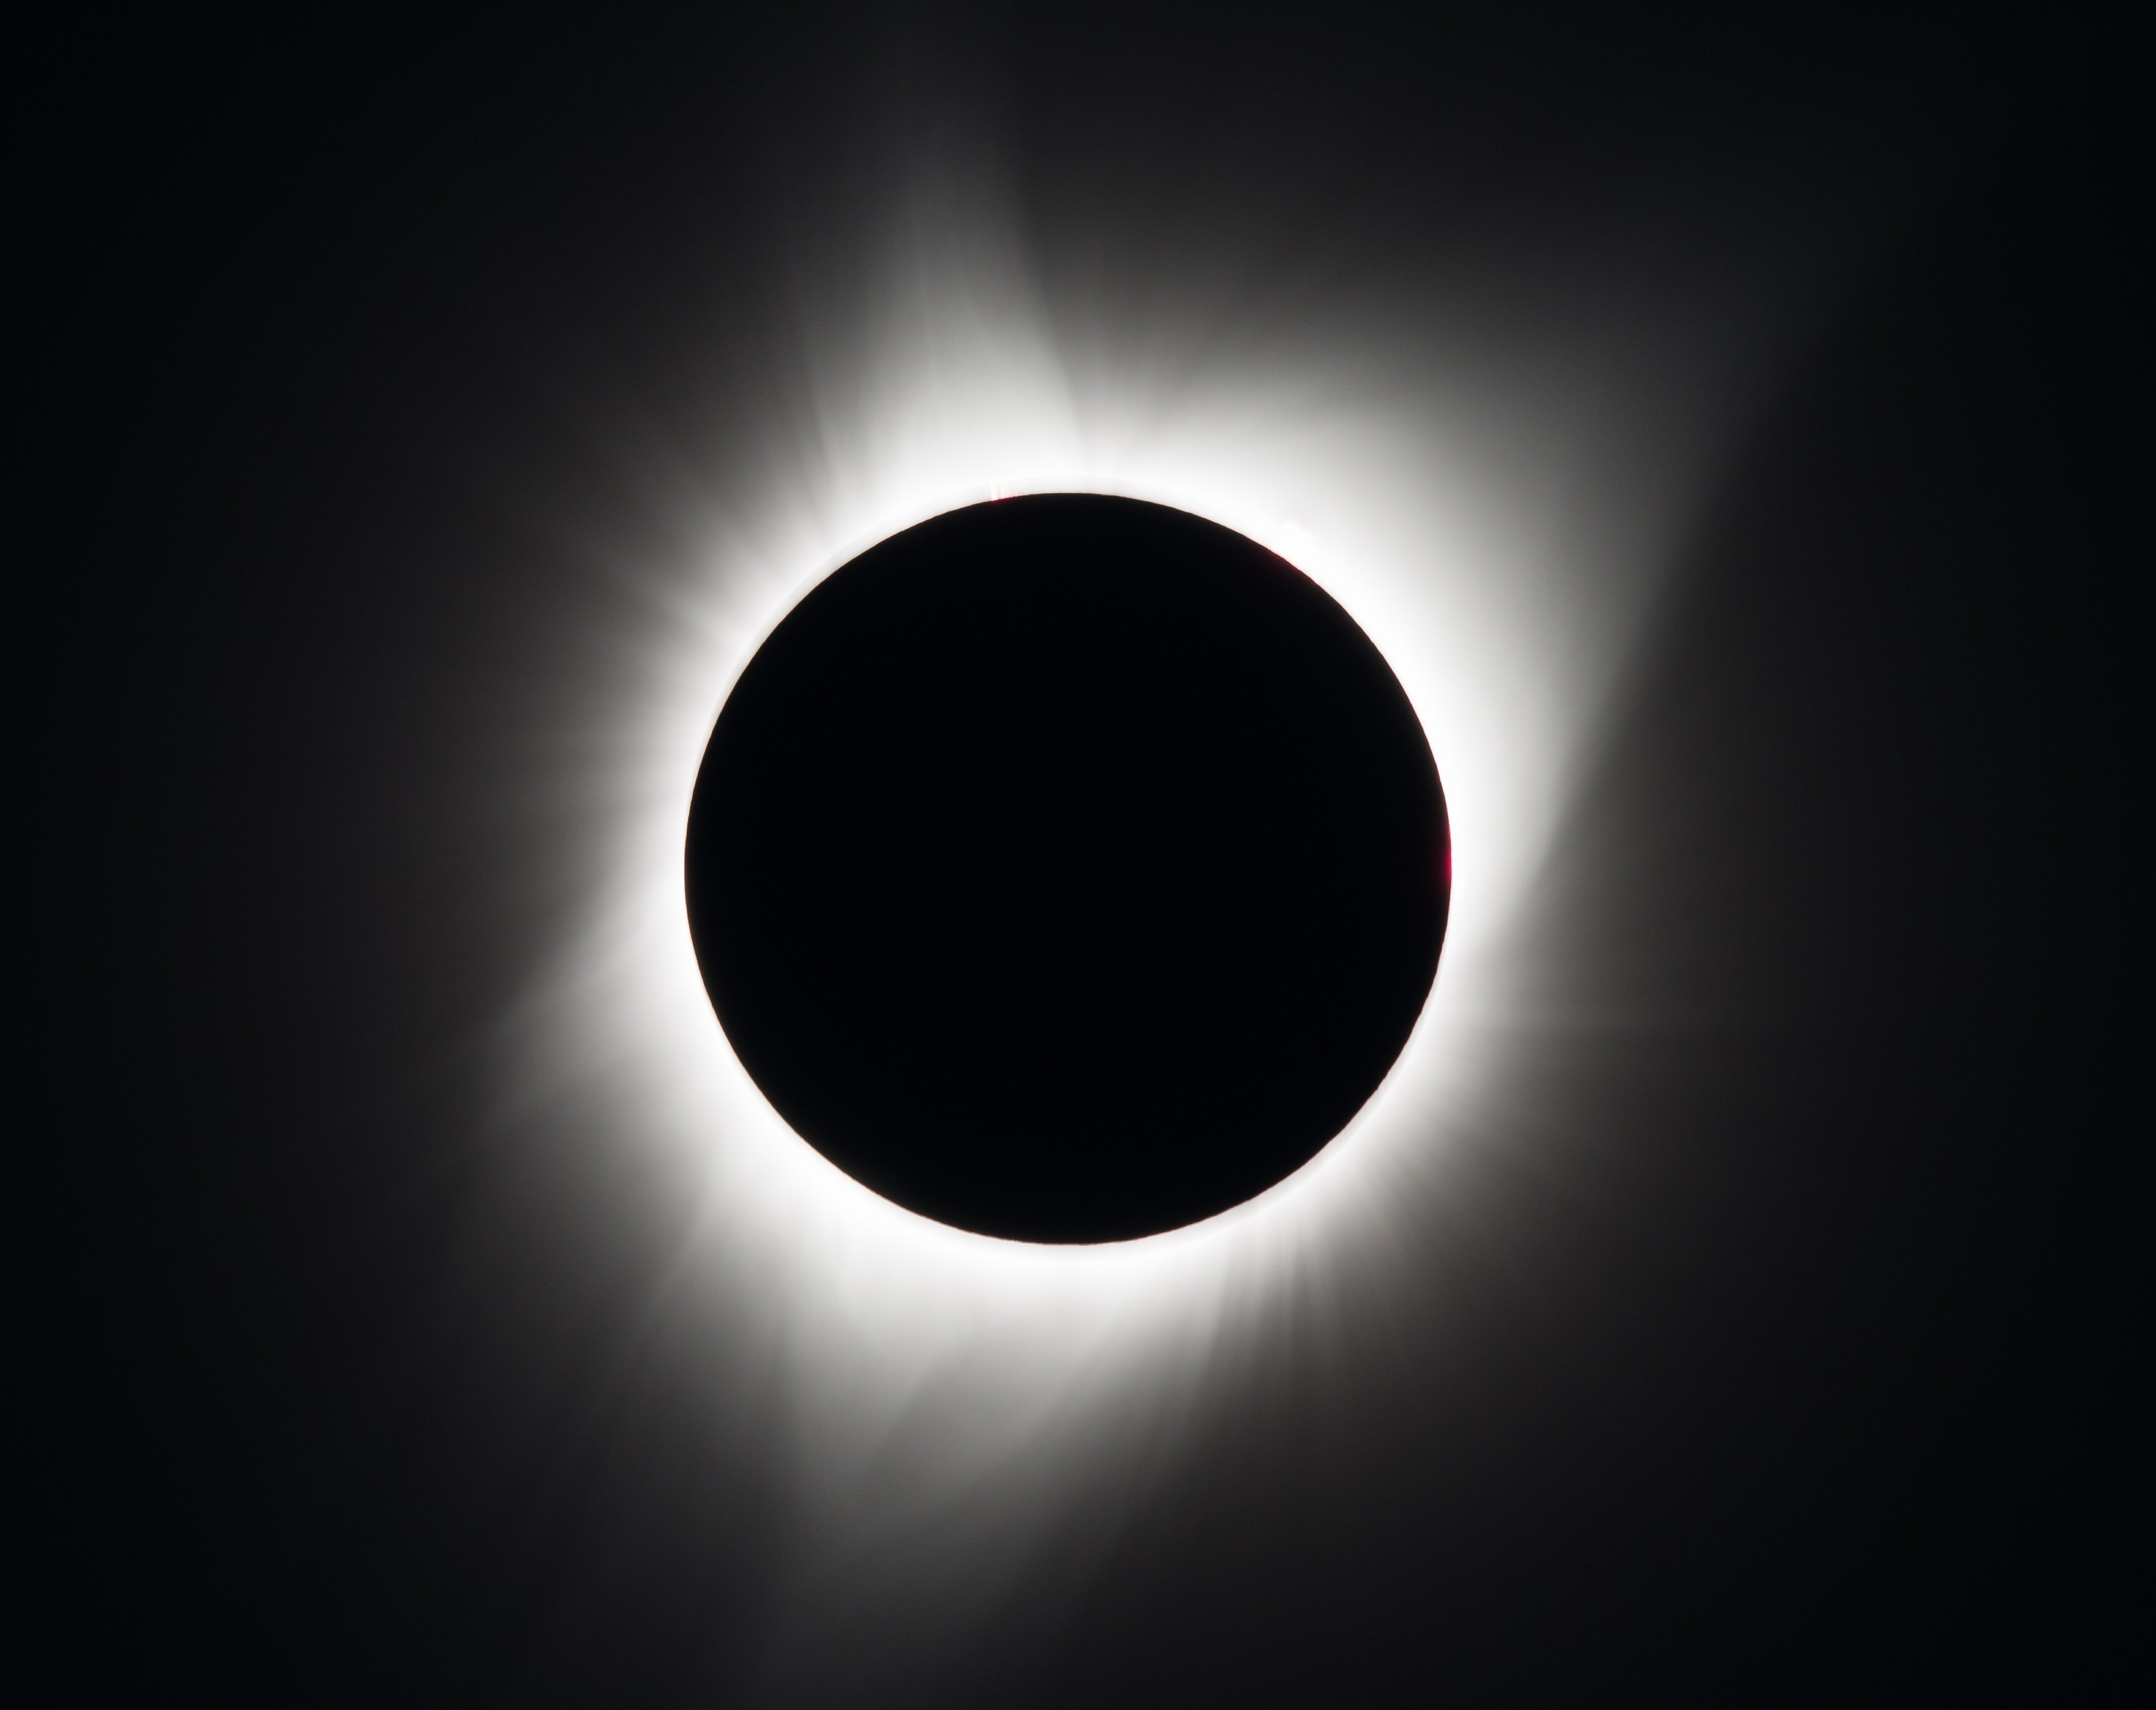 A total solar eclipse is seen on Monday, August 21, 2017 above Madras, Oregon. A total solar eclipse swept across a narrow portion of the contiguous United States from Lincoln Beach, Oregon to Charleston, South Carolina.